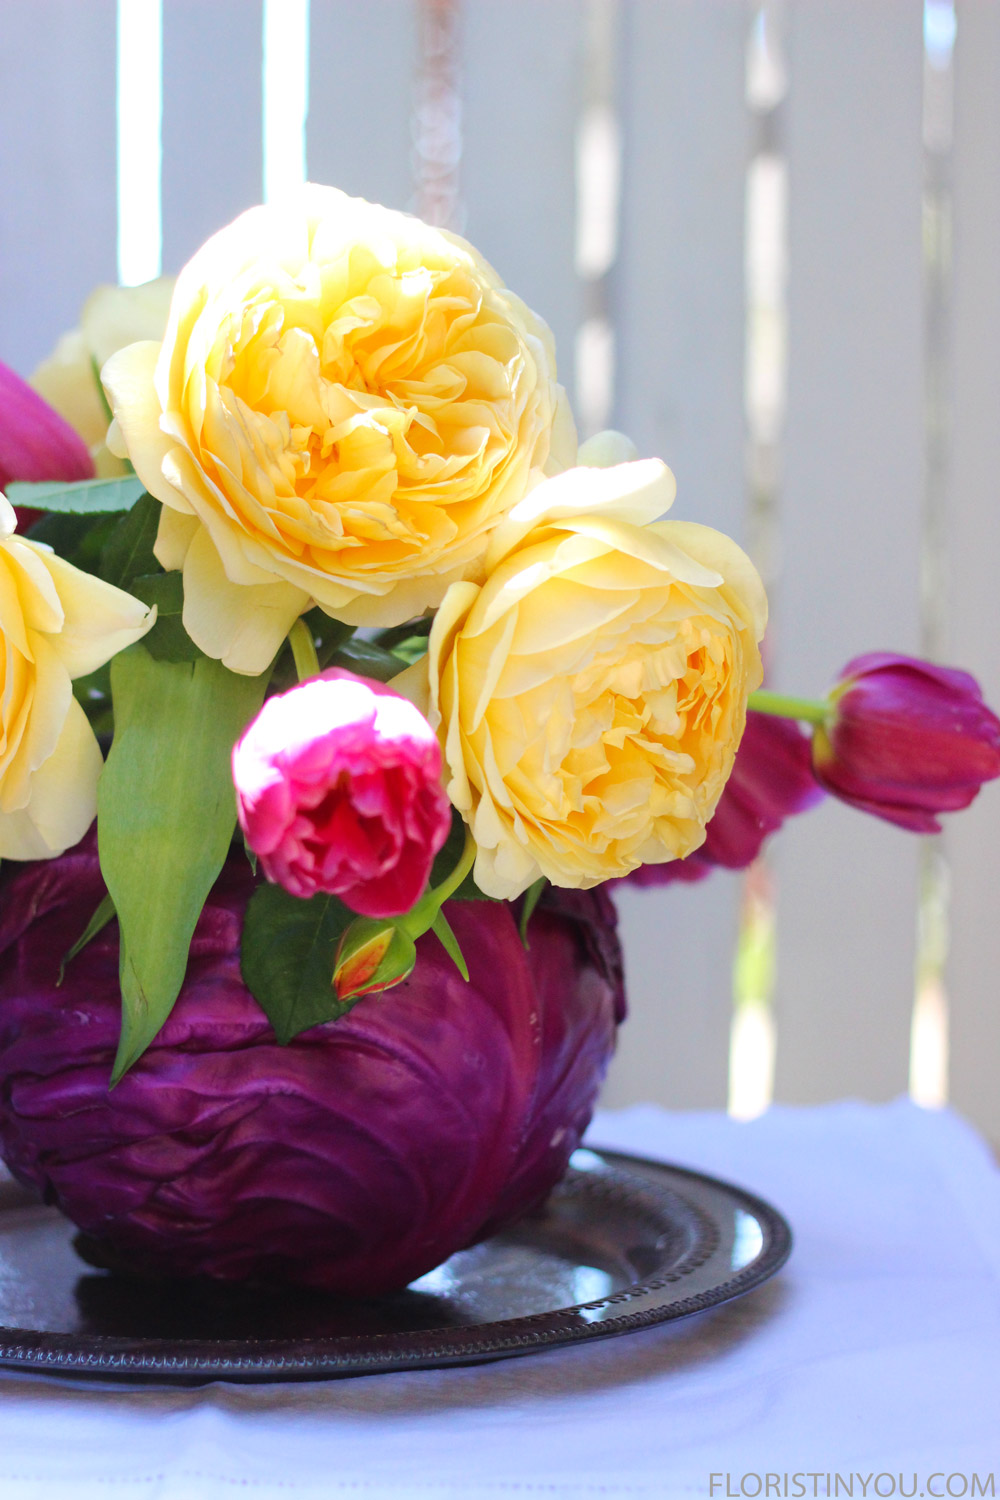 A great color combo, violet and yellow accented with bright green.